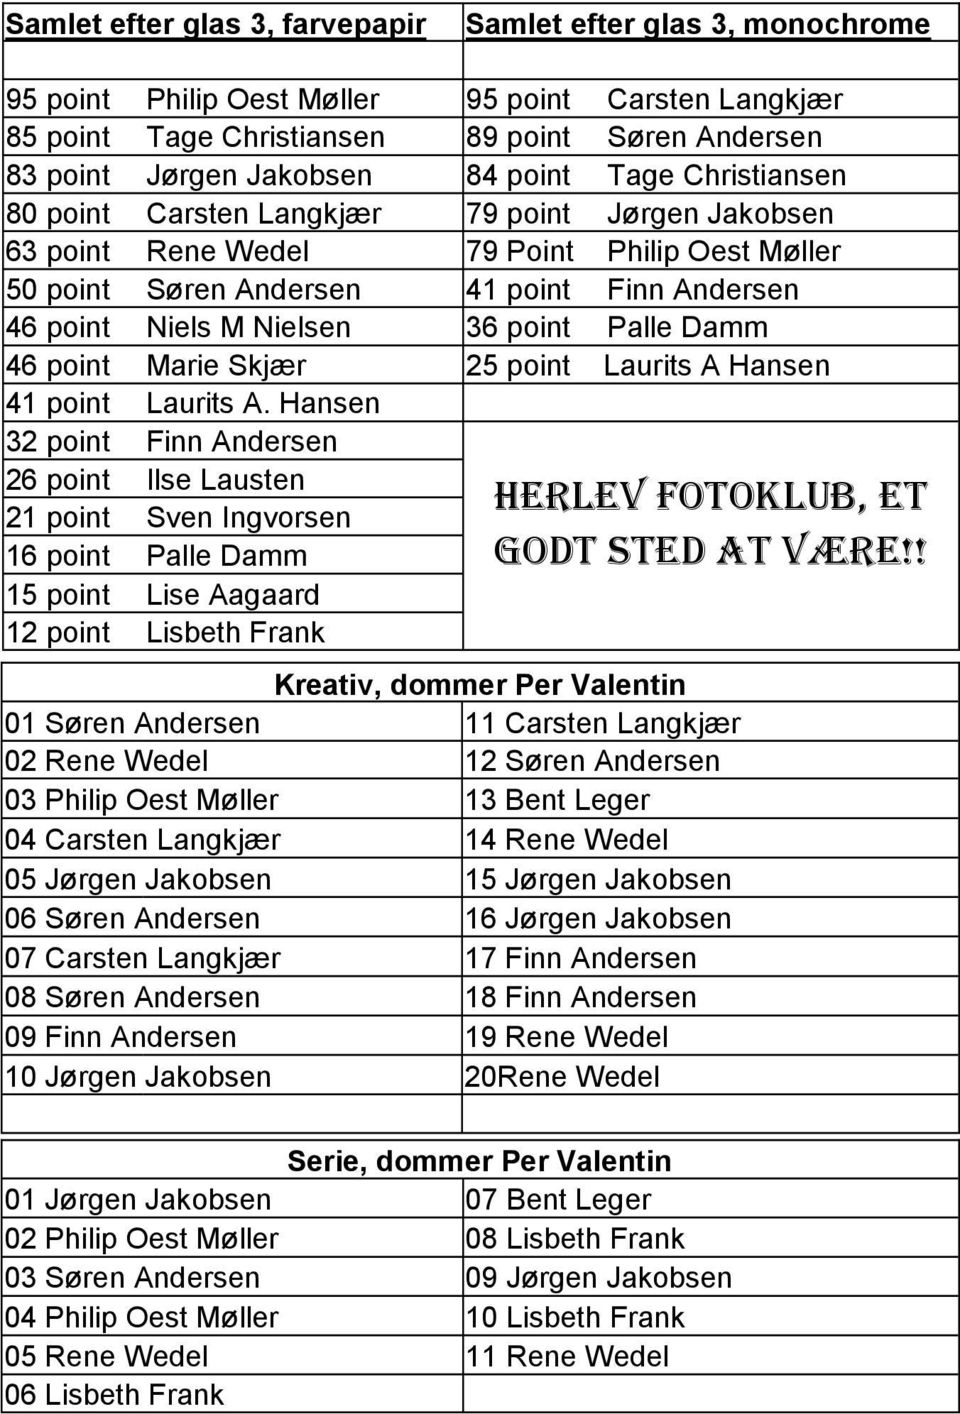 point Palle Damm 46 point Marie Skjær 25 point Laurits A Hansen 41 point Laurits A.